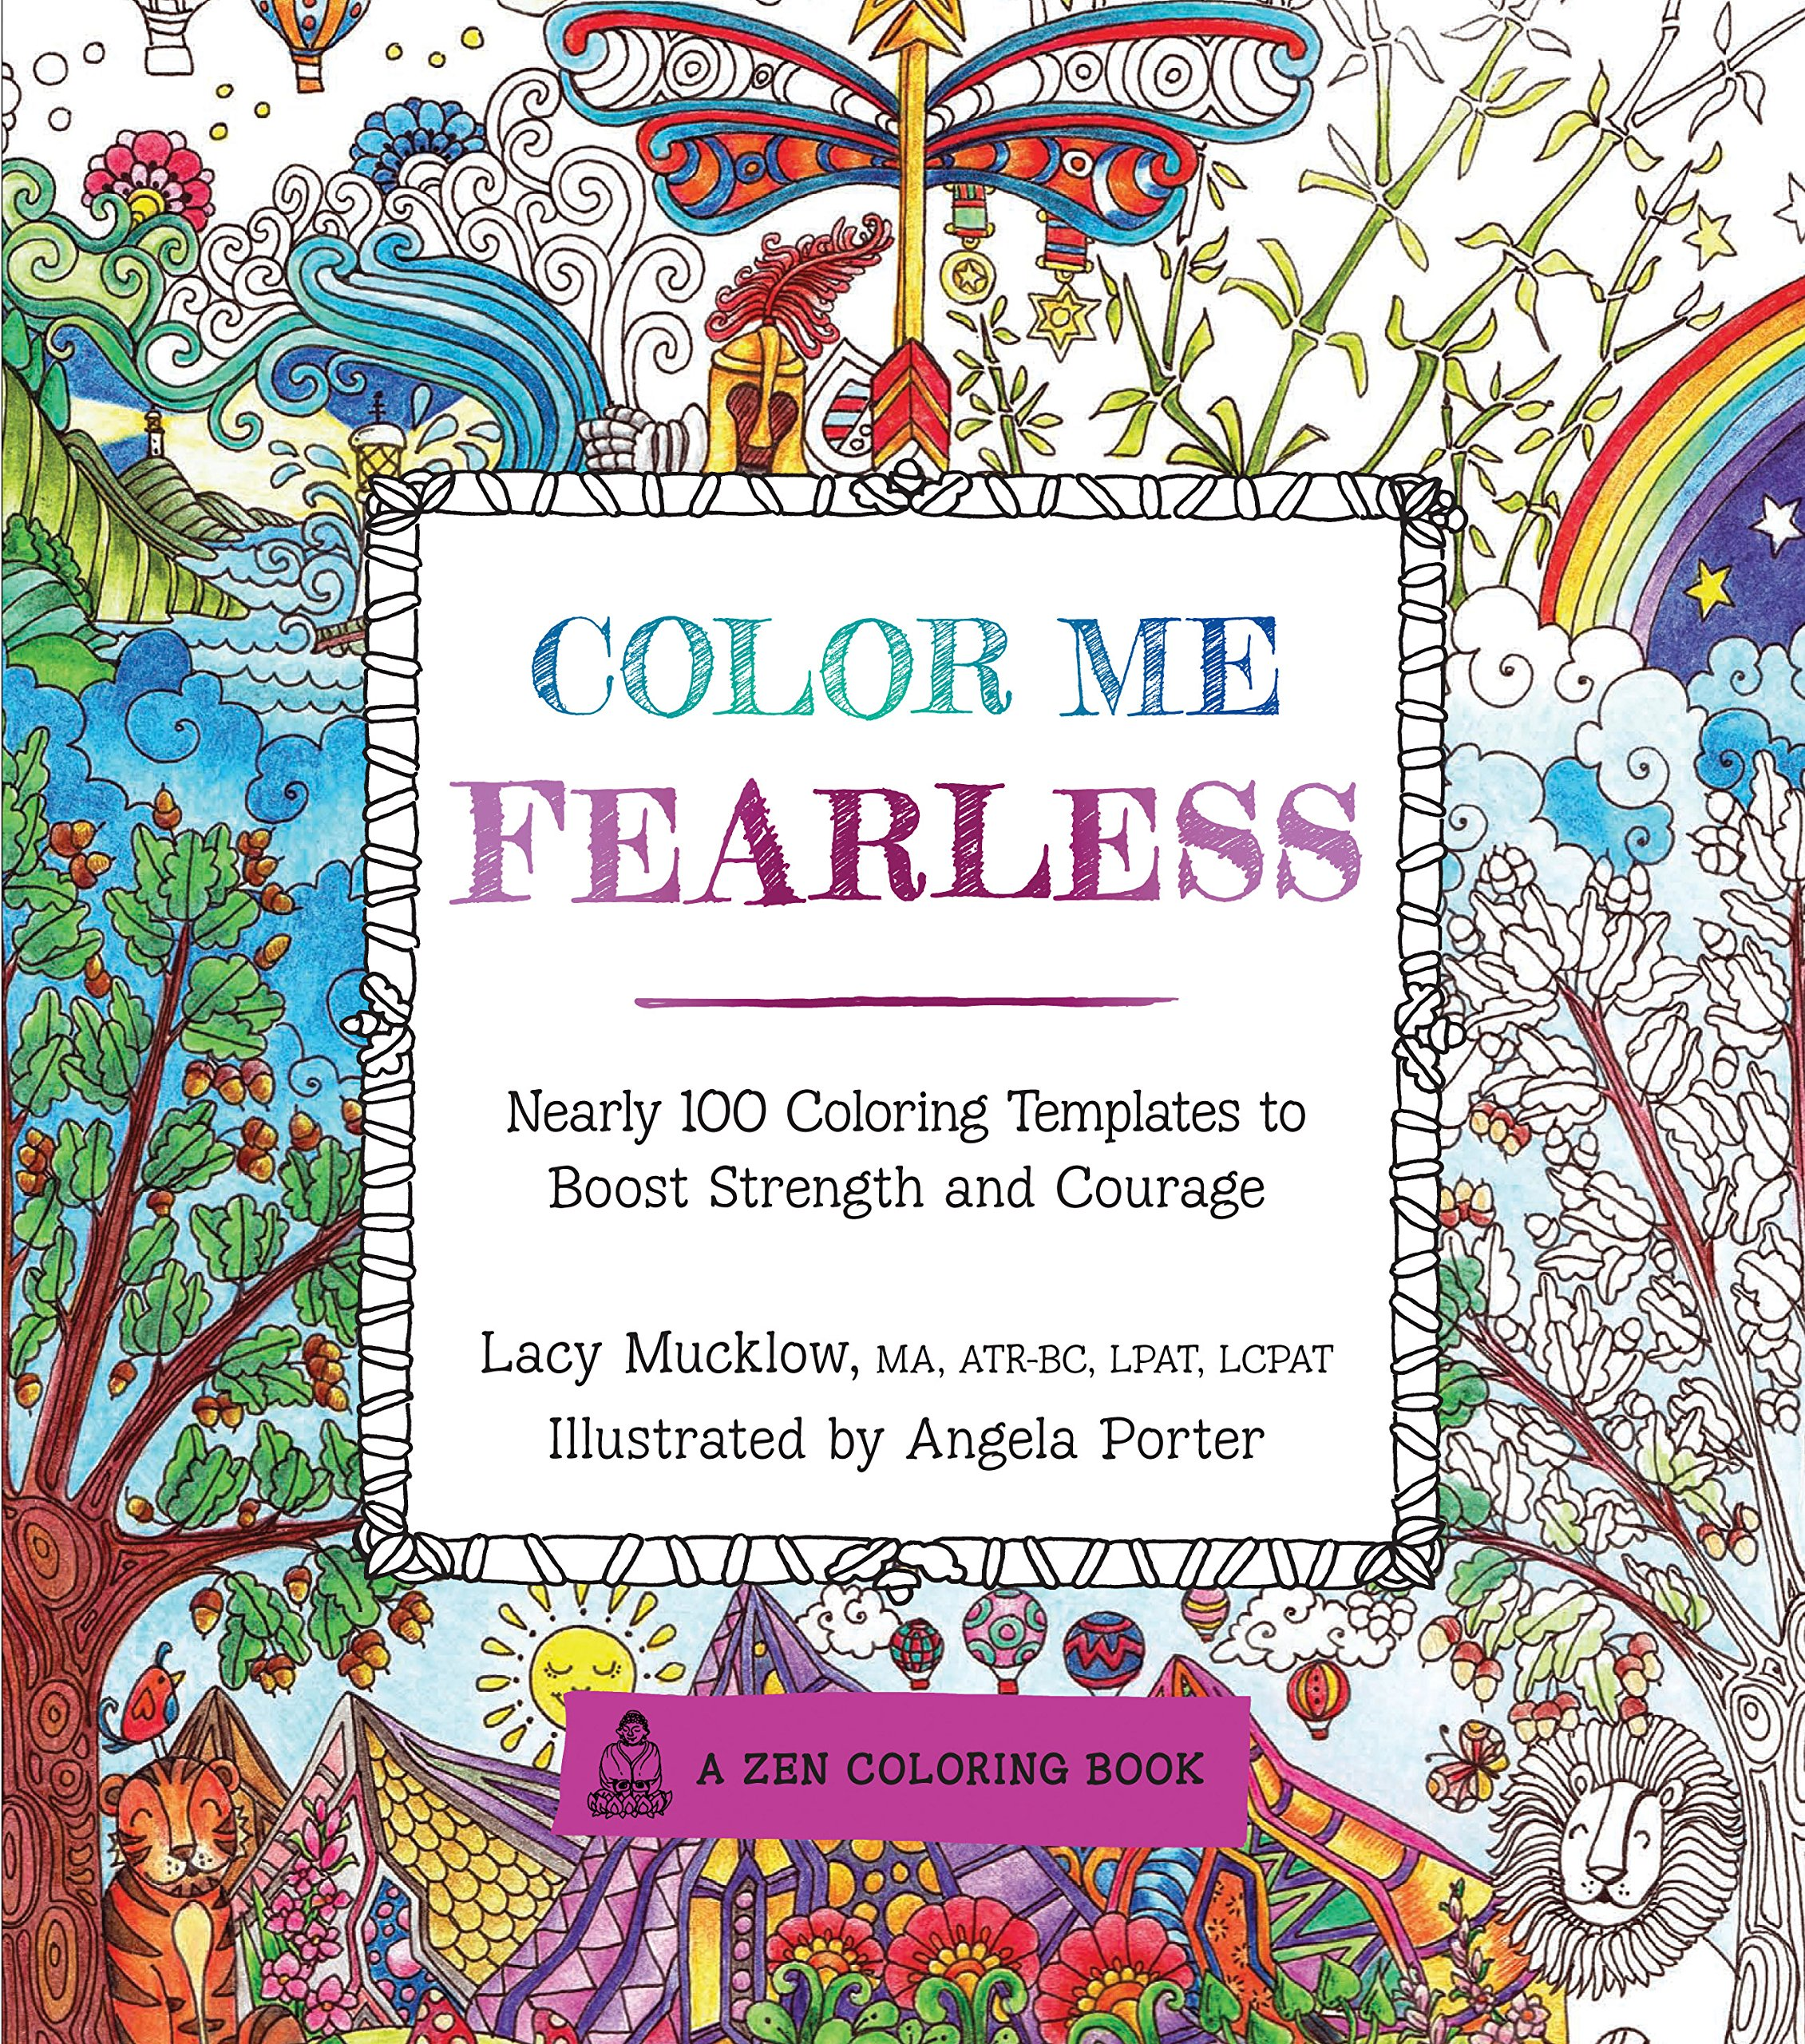 Color Me Fearless Nearly 100 Coloring Templates To Boost Strength And Courage A Zen Book Lacy Mucklow Angela Porter 9781631061950